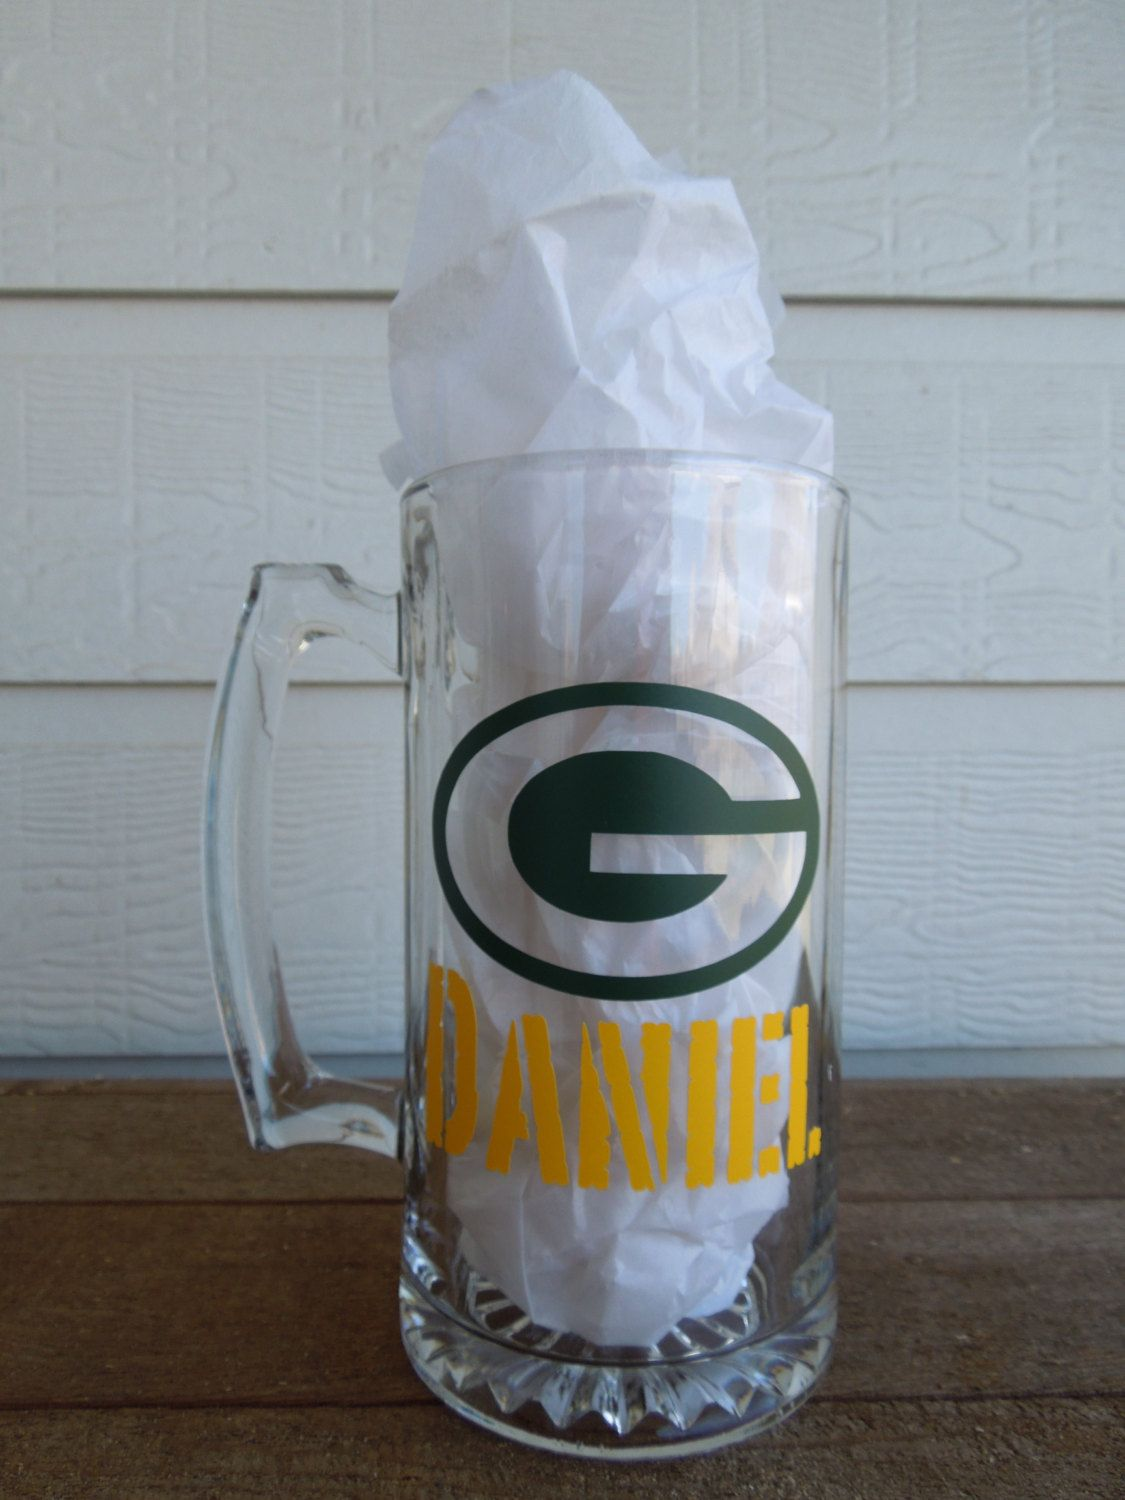 Greenbay Packers 27 Ounce Sport Beer Mug Football Go Pack Go 12 50 Via Etsy Green Bay Packers Crafts Green Bay Packers Baby Green Bay Packers